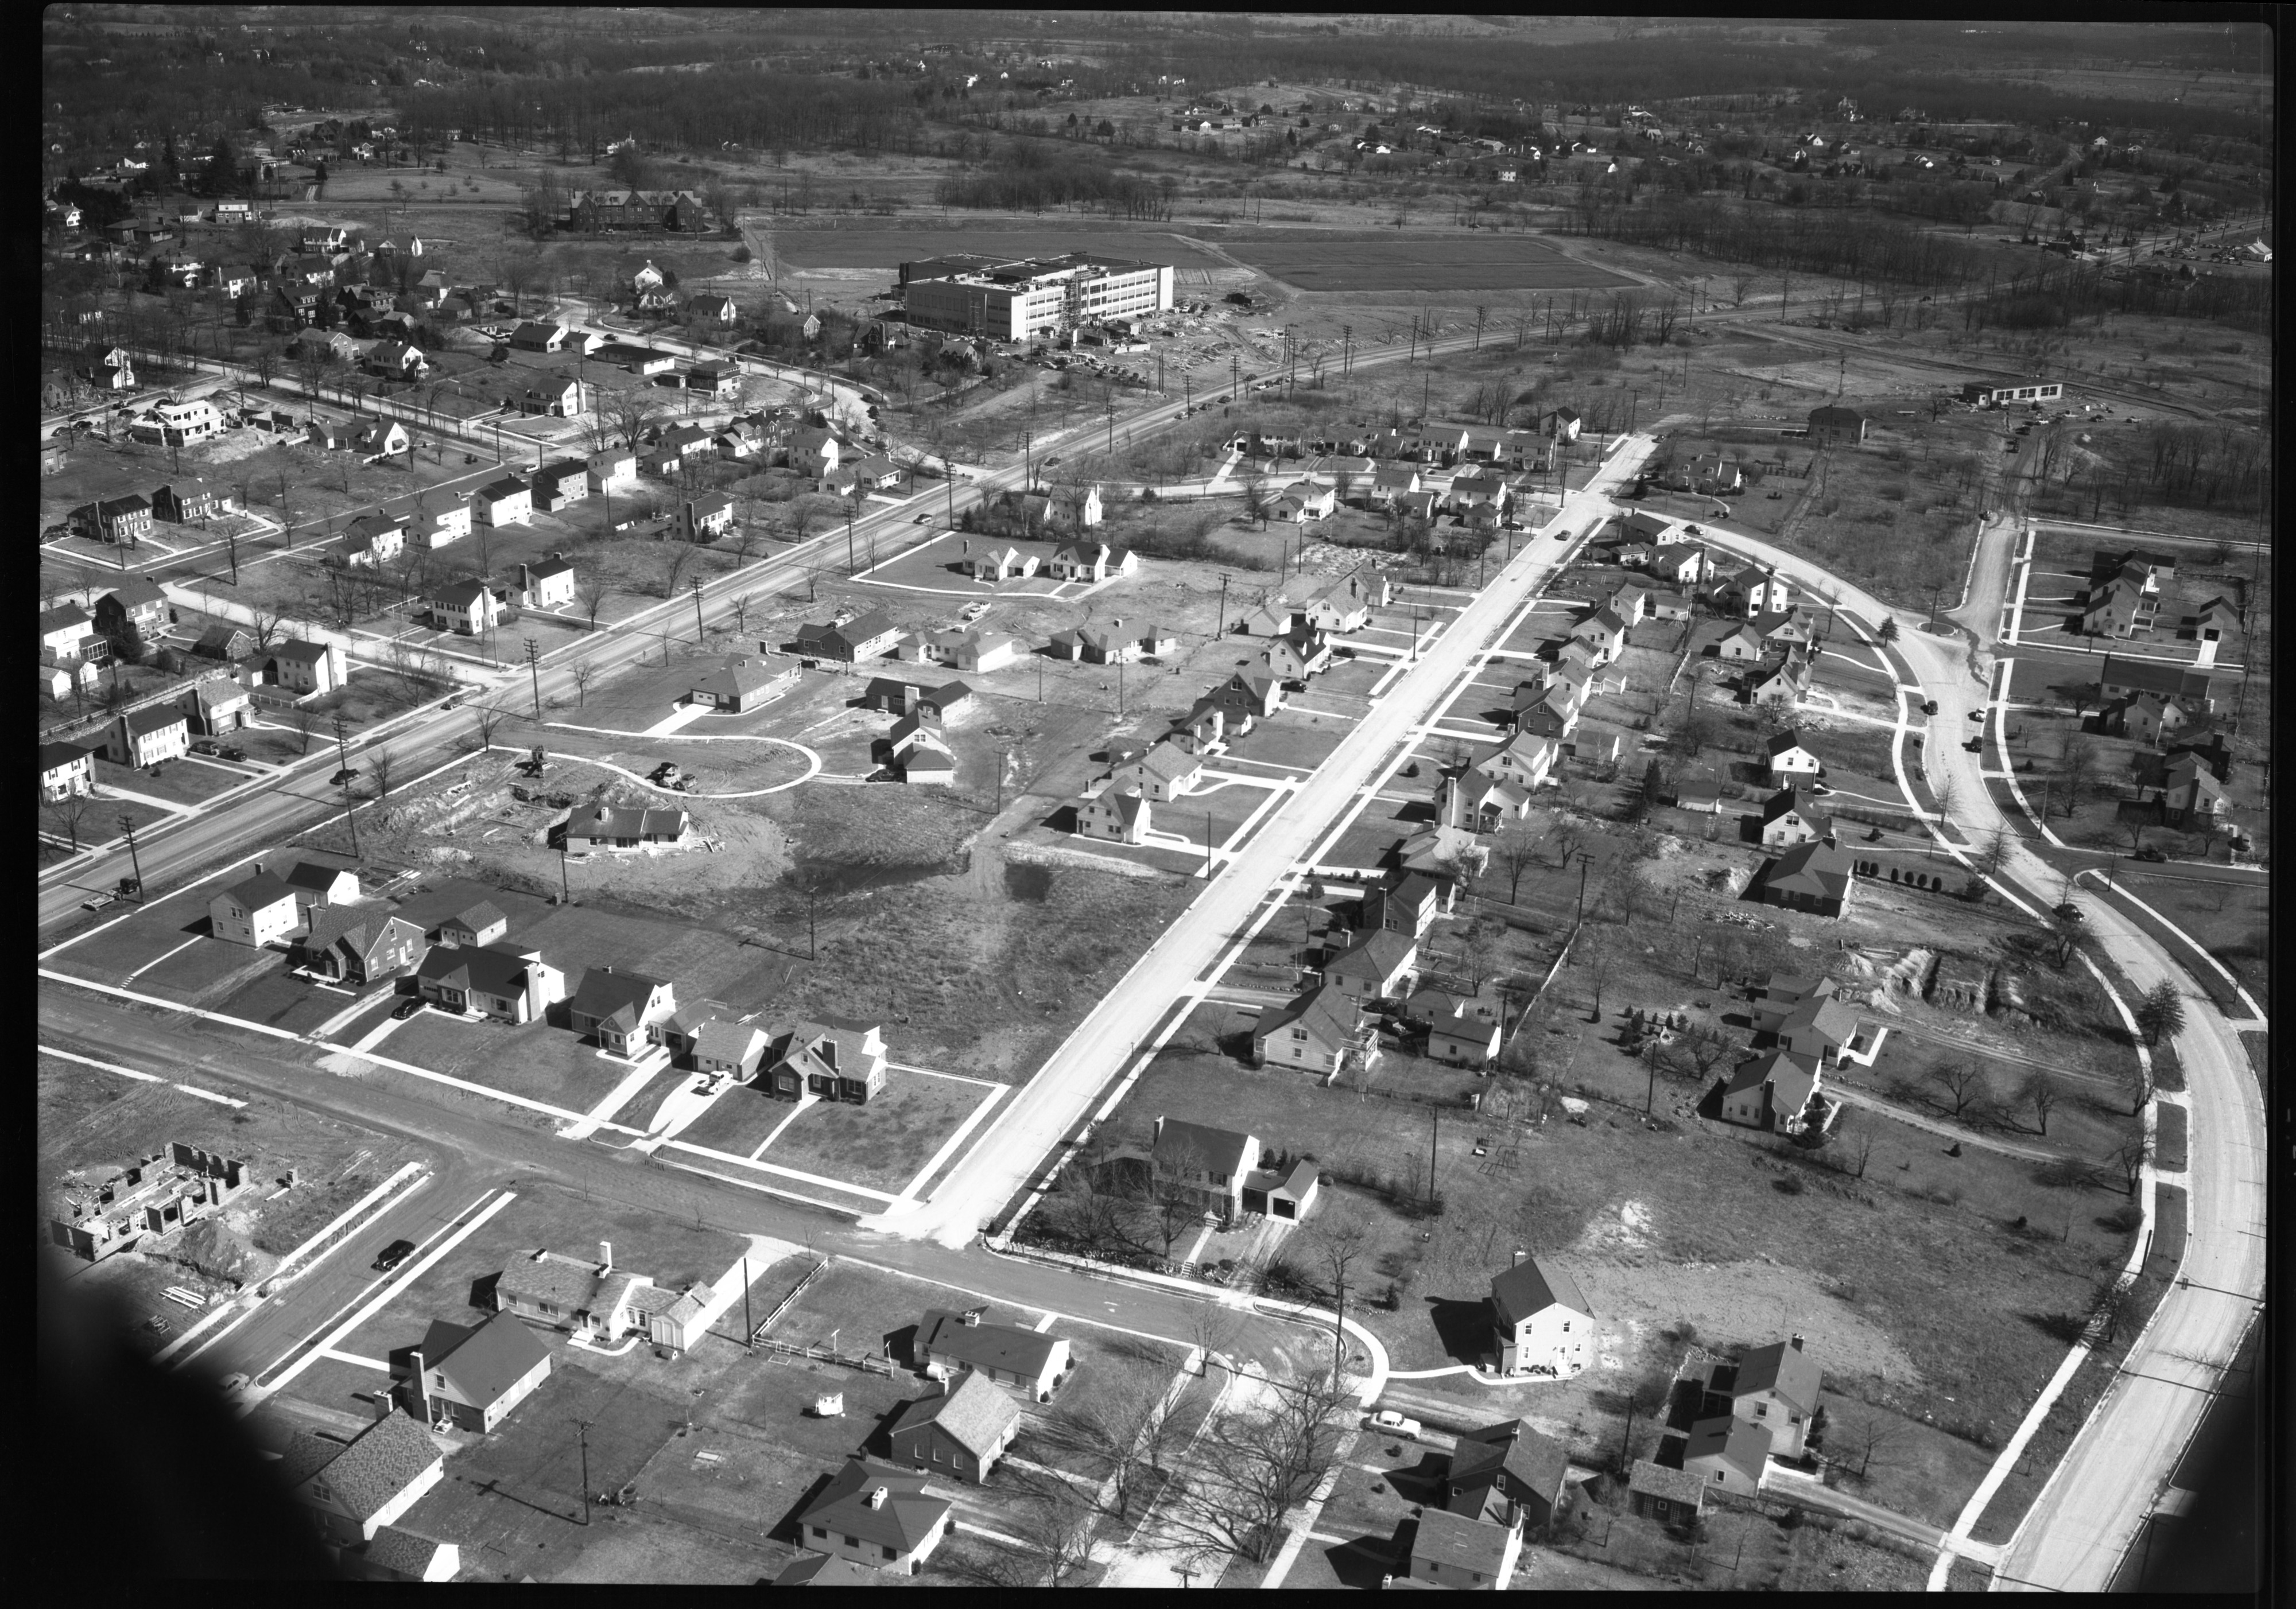 Southeast Area Around Brockman, From Air, March 1951 image